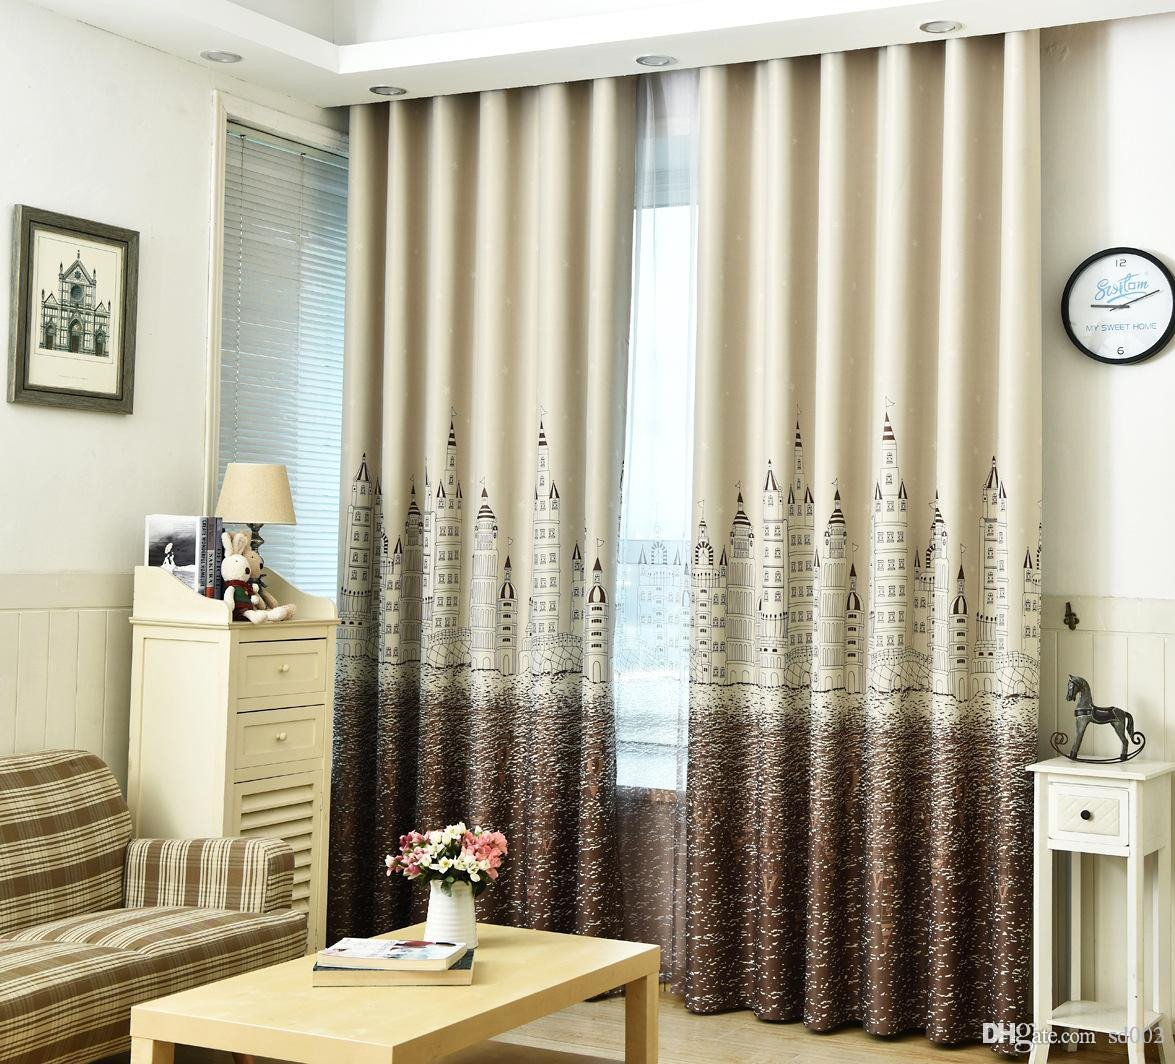 Western Curtains for Bedroom Fresh 2019 Cartoon Shading Window Curtain Castle Printing Drape for Living Room Kids Bedroom Cute Home Decor Multi Colors 23xs Ii From Sd003 $9 12